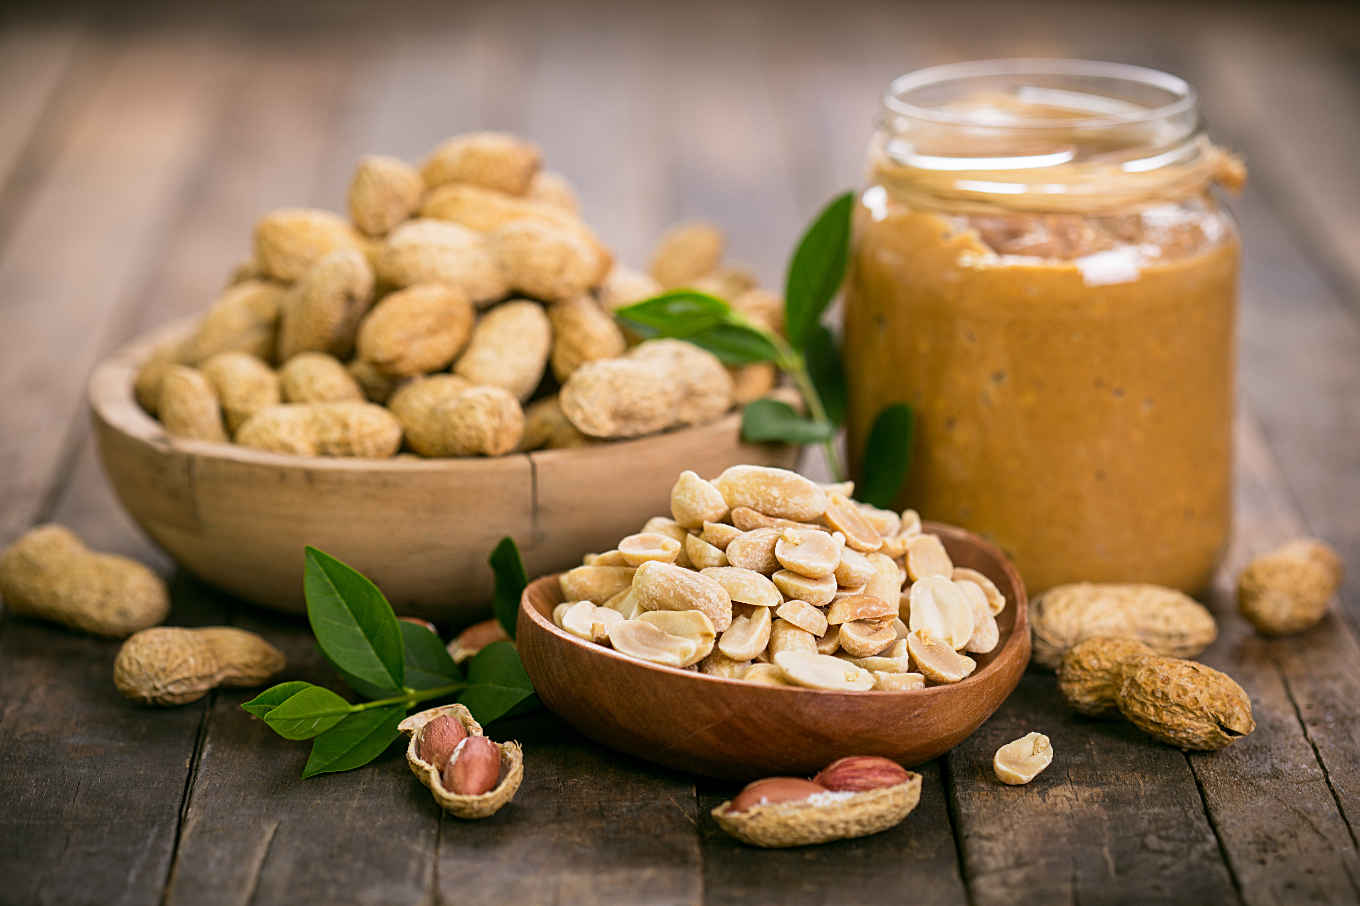 Consider Nuts Instead of Nut Butters If You are Trying to Lose Weight